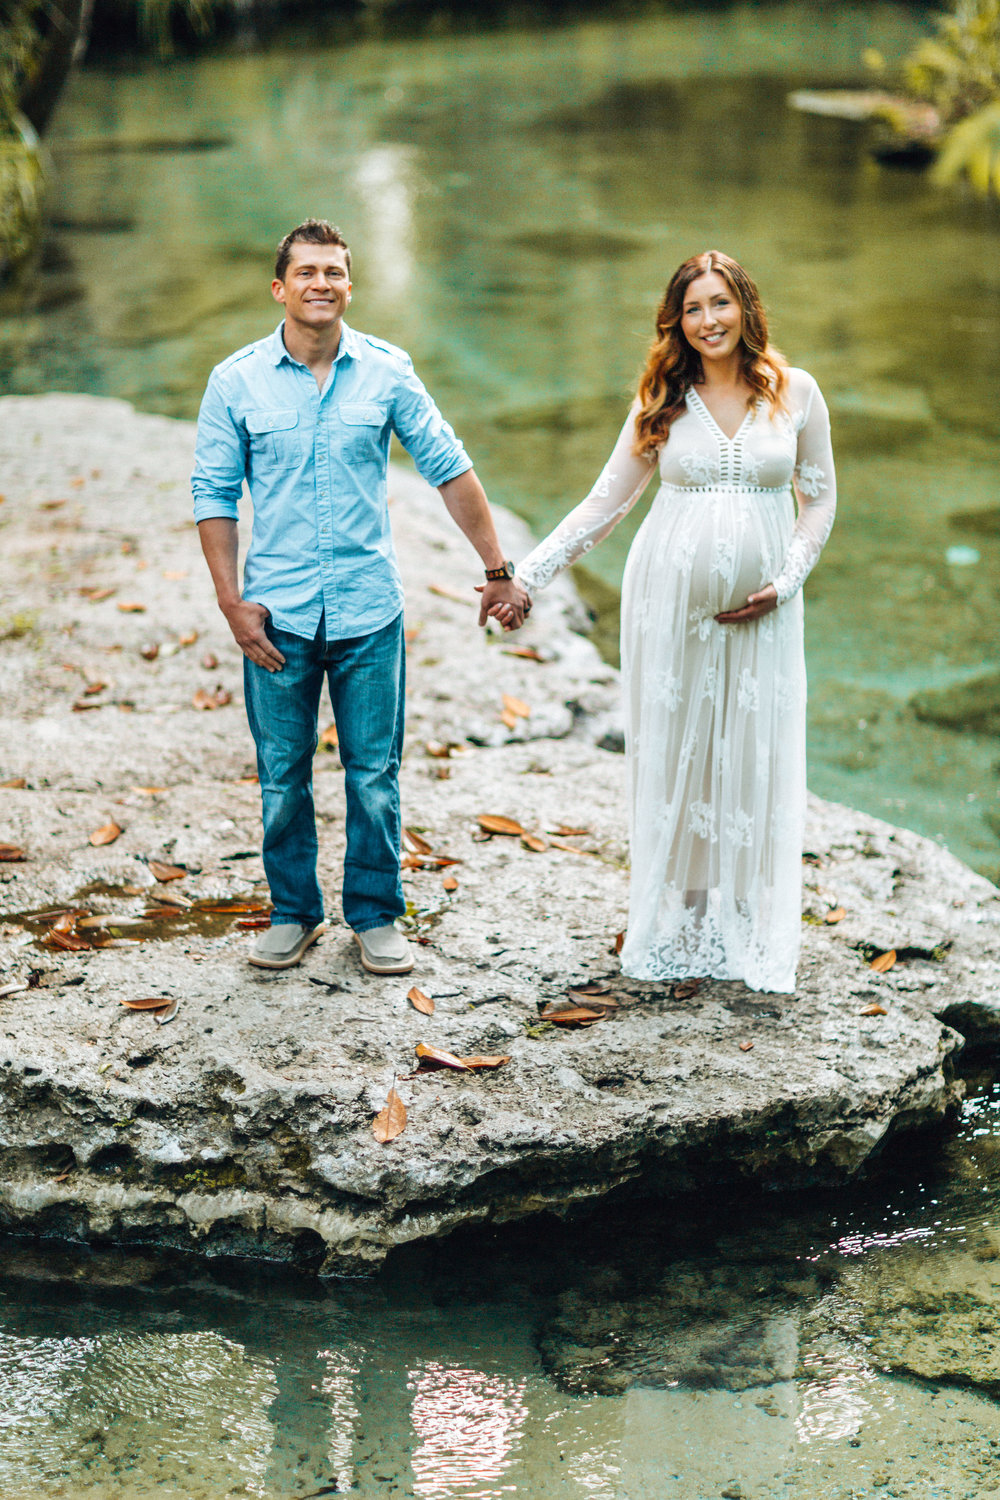 Sneak Peak-Florida Springs maternity photo session- Stephanie+Ryan- ShainaDeCiryan.com-13.jpg